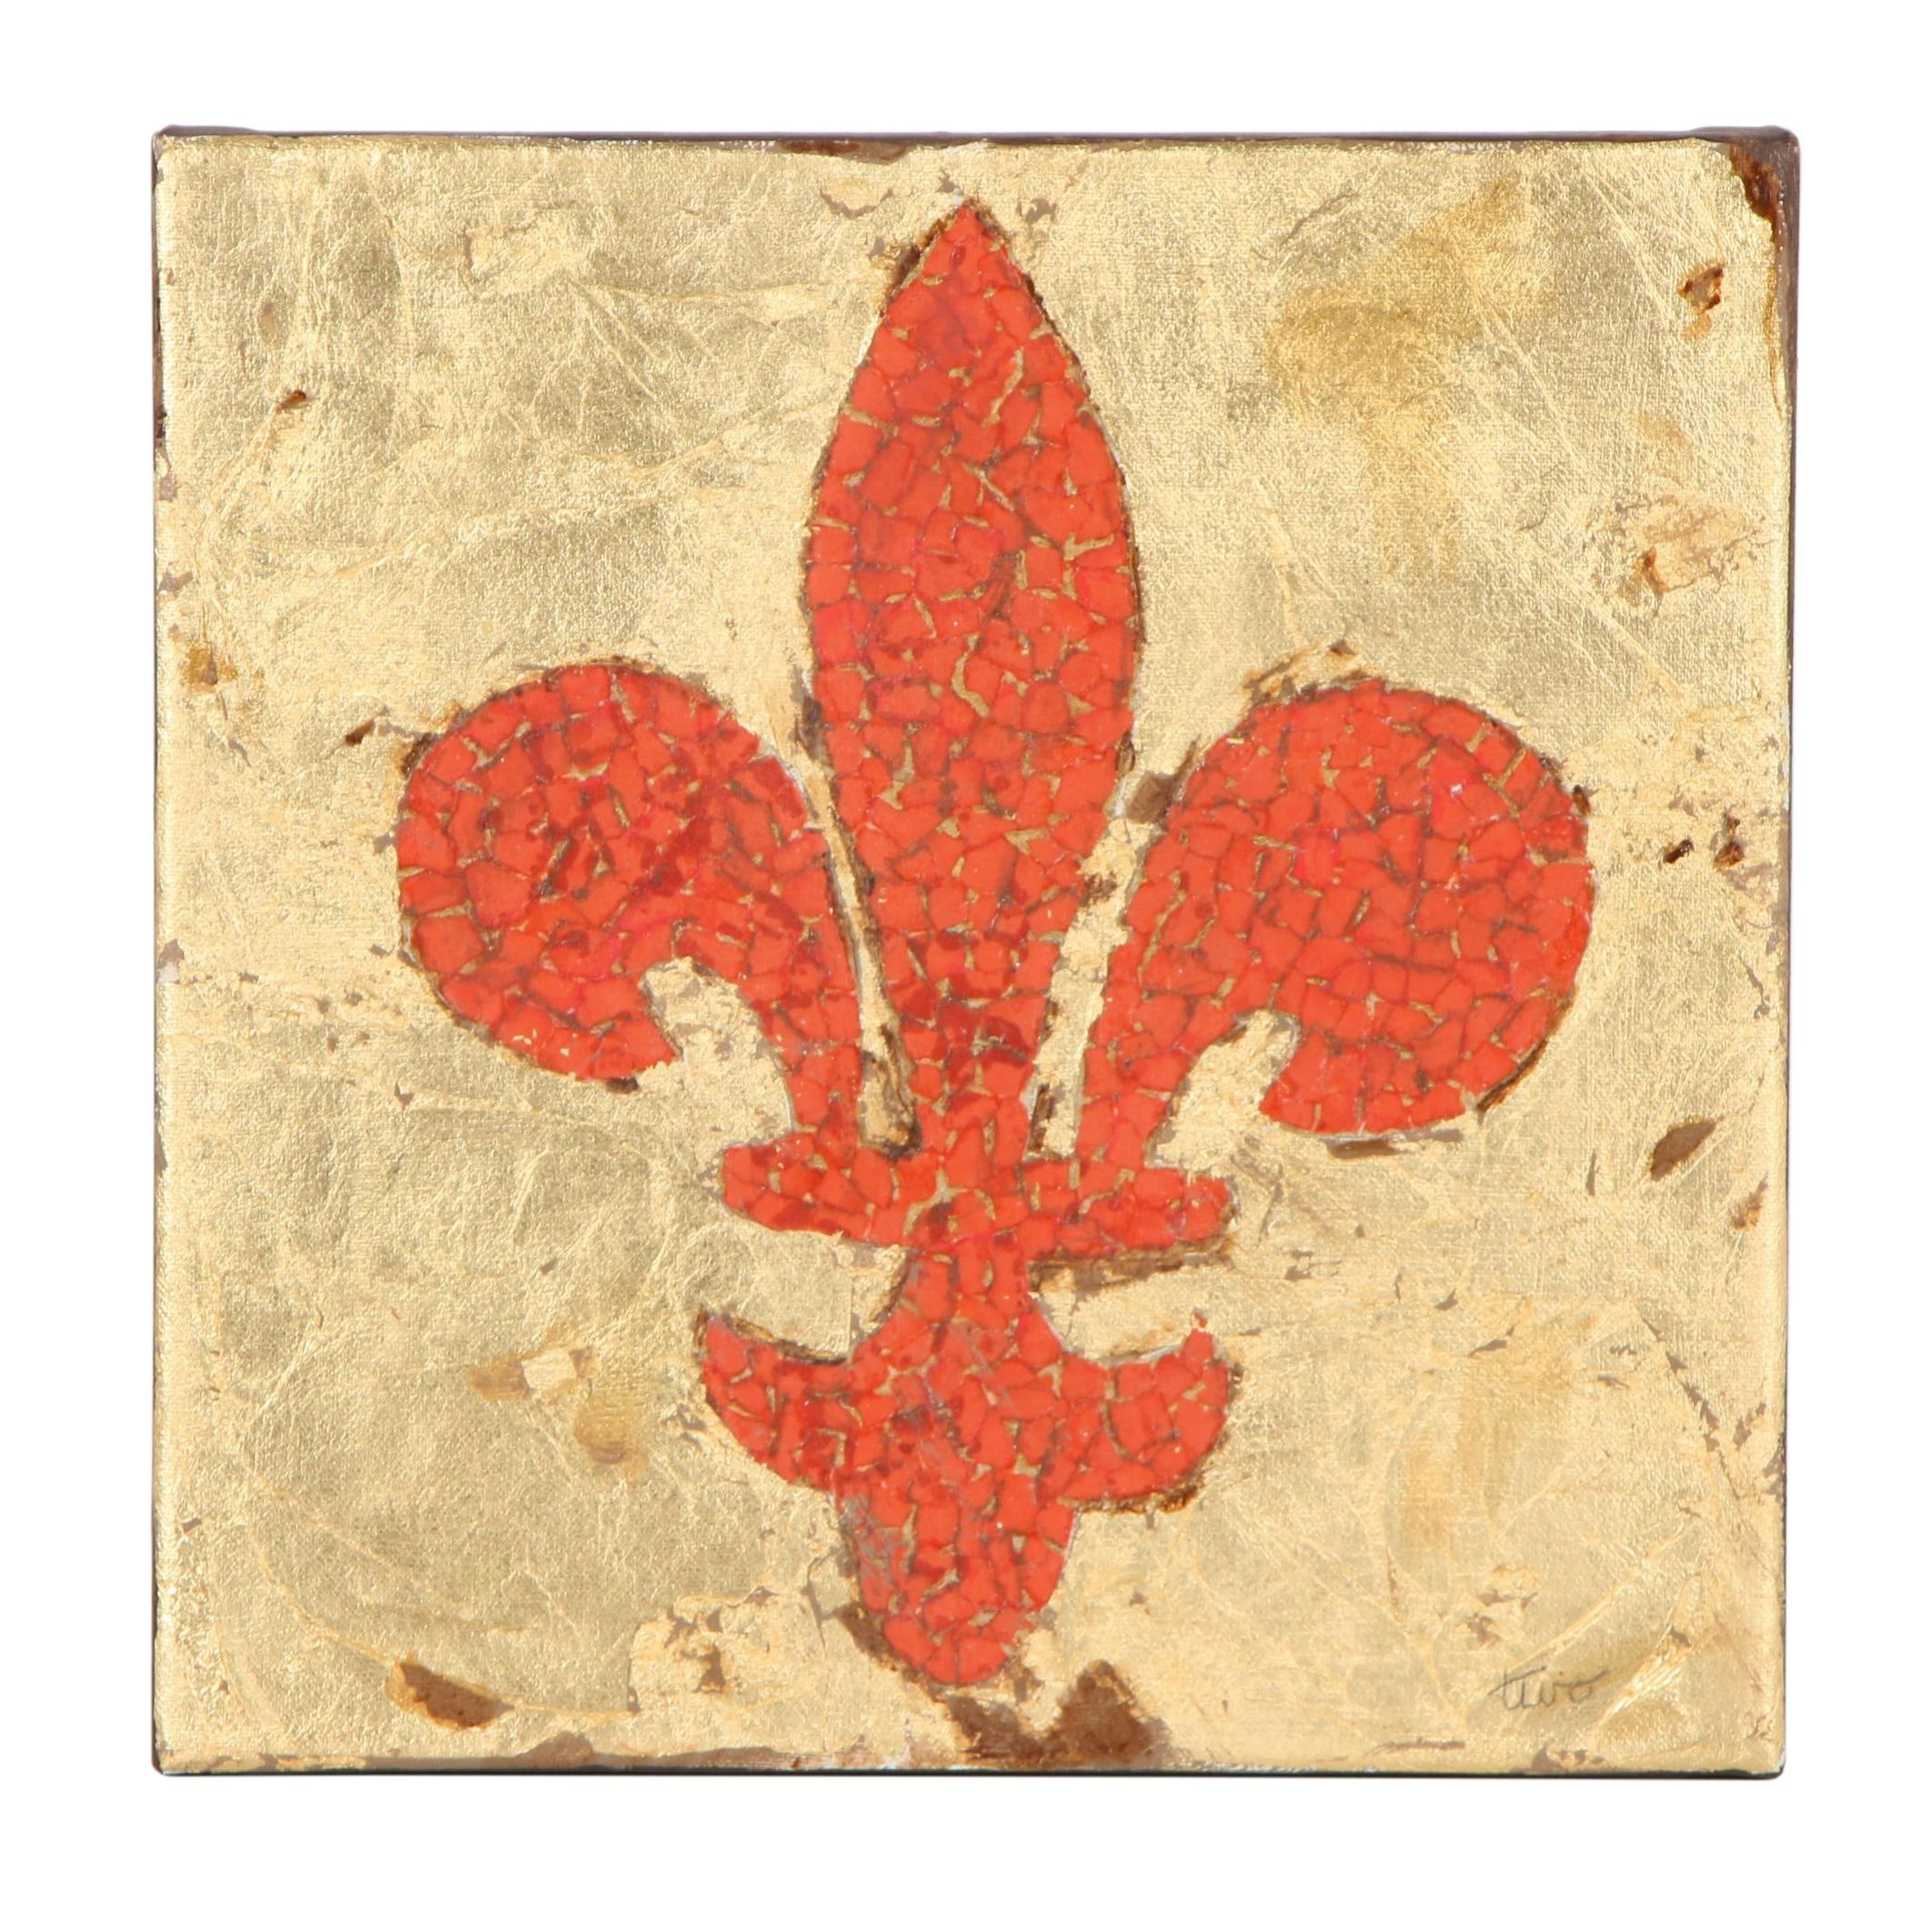 Mixed Media Painting of the Fleur-di-Lis